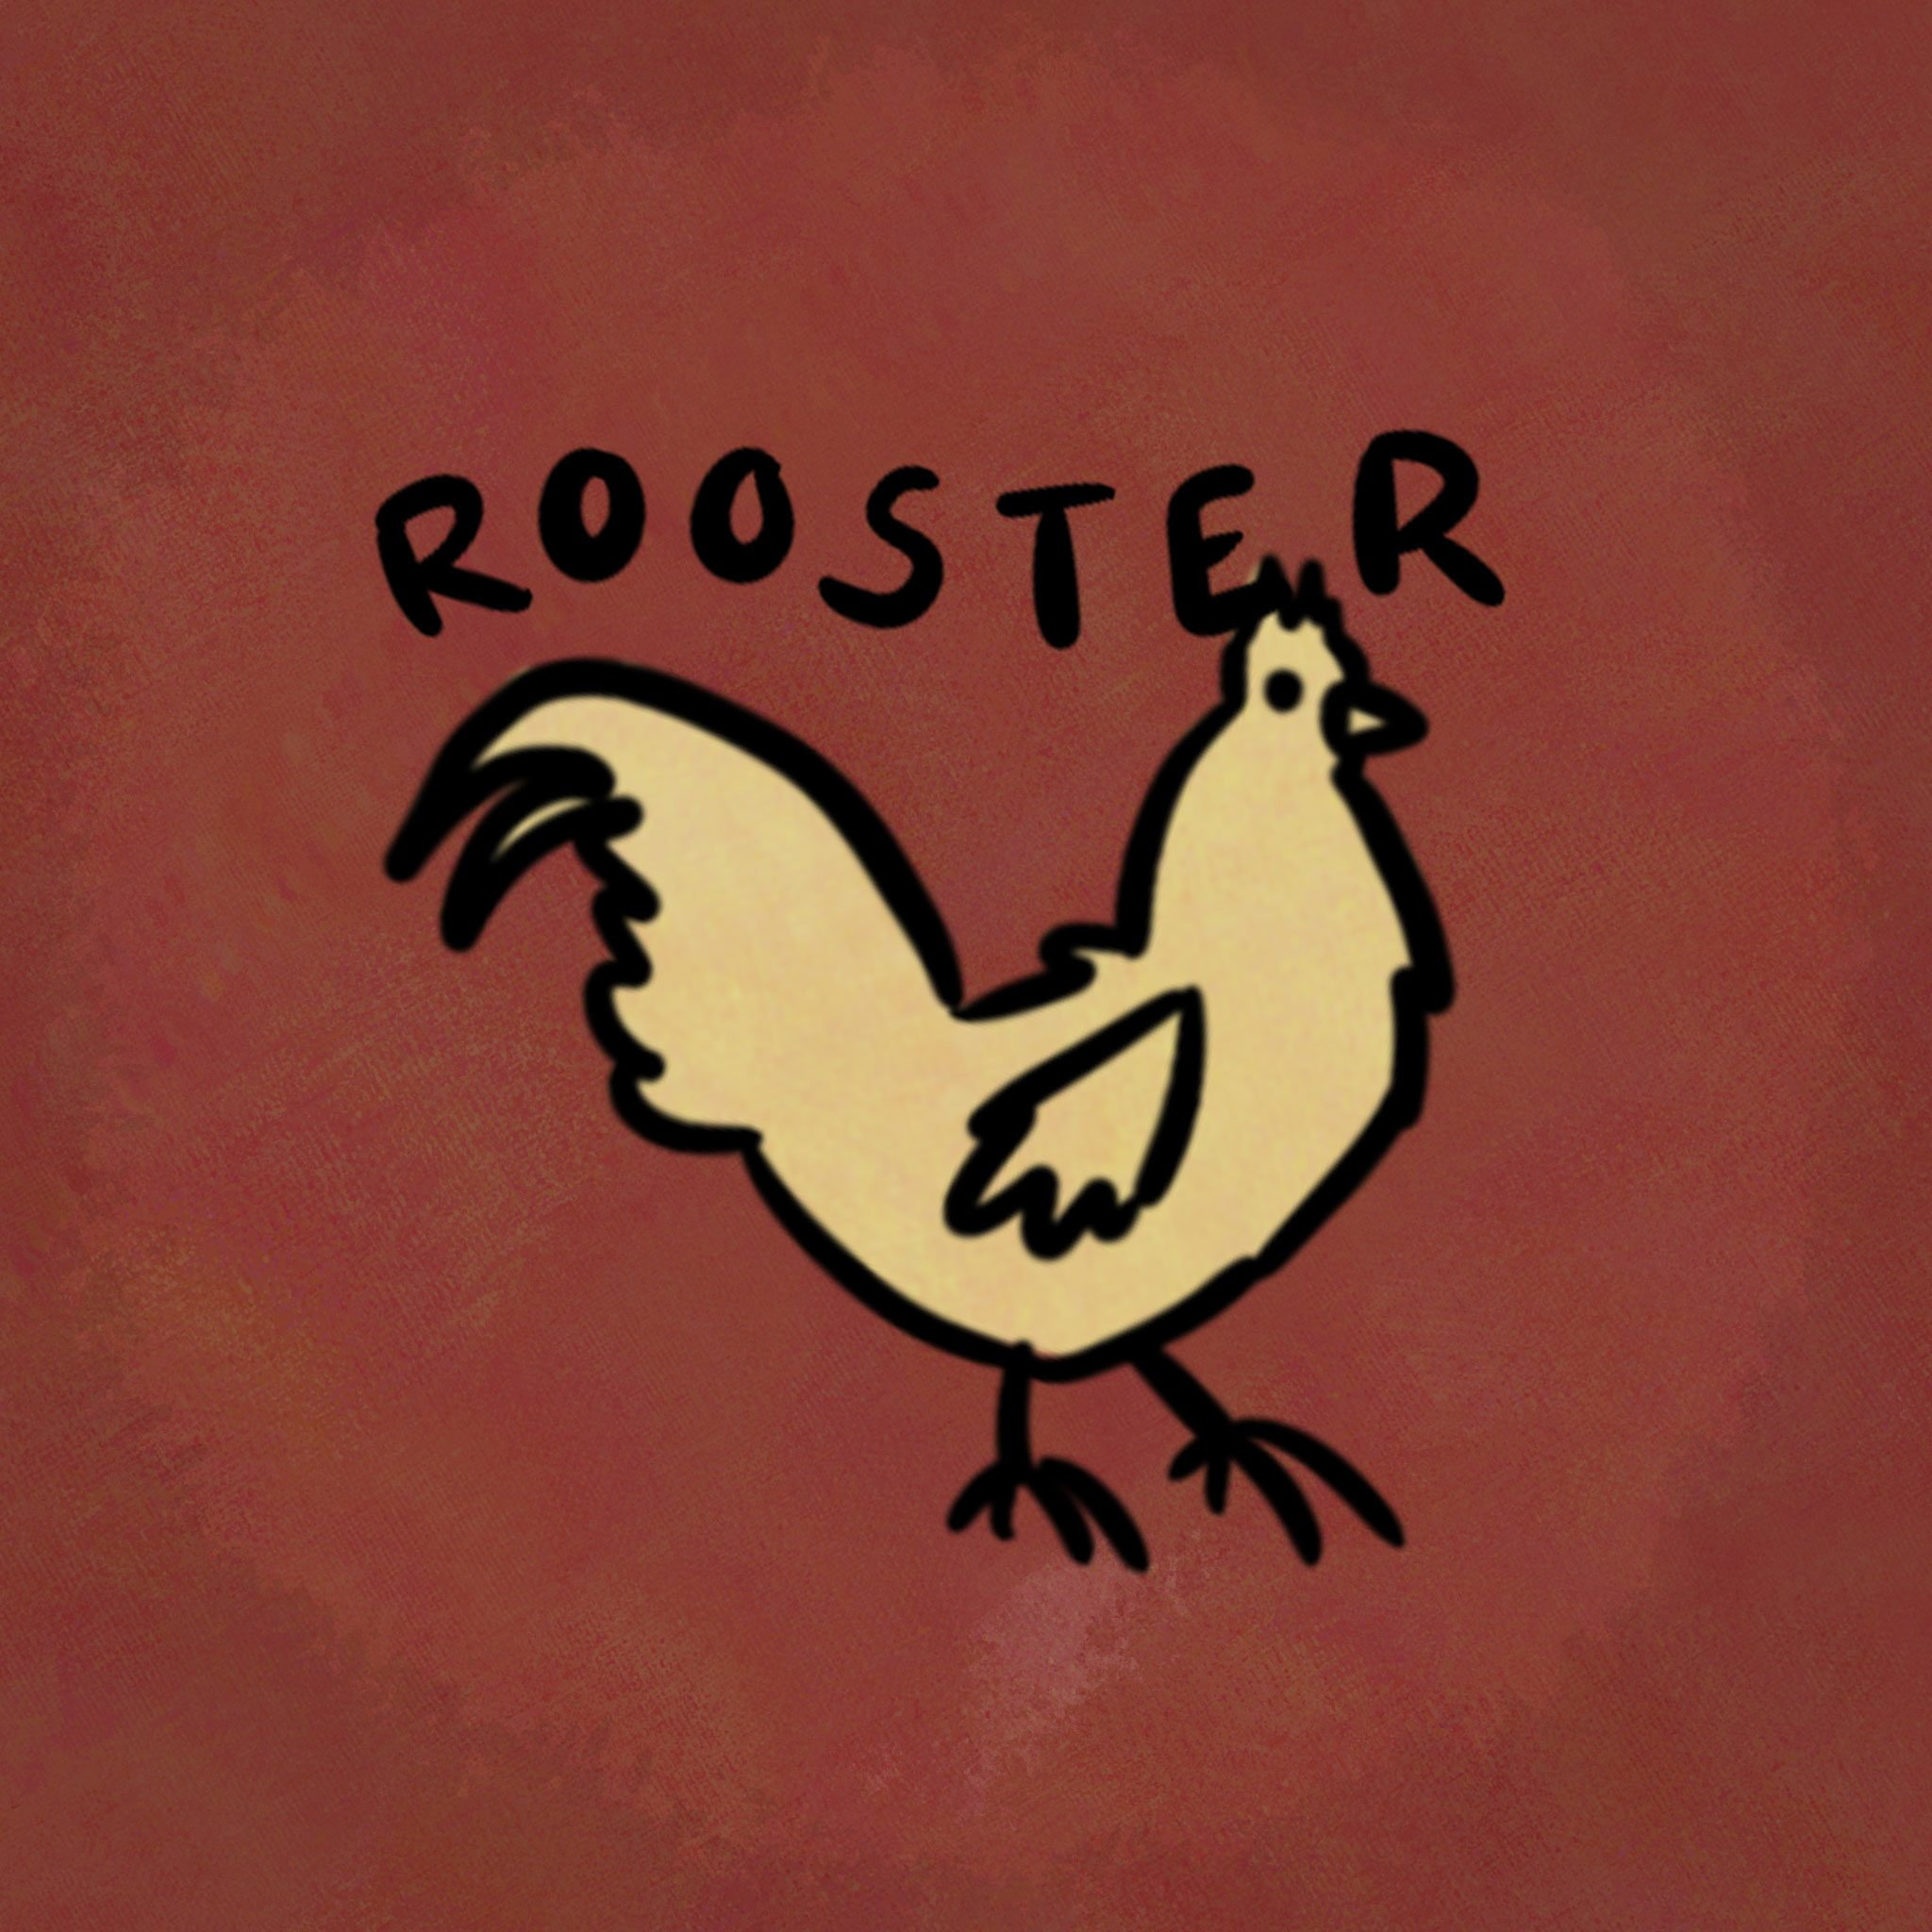 Illustration of animal from the chinese zodiac: Rooster